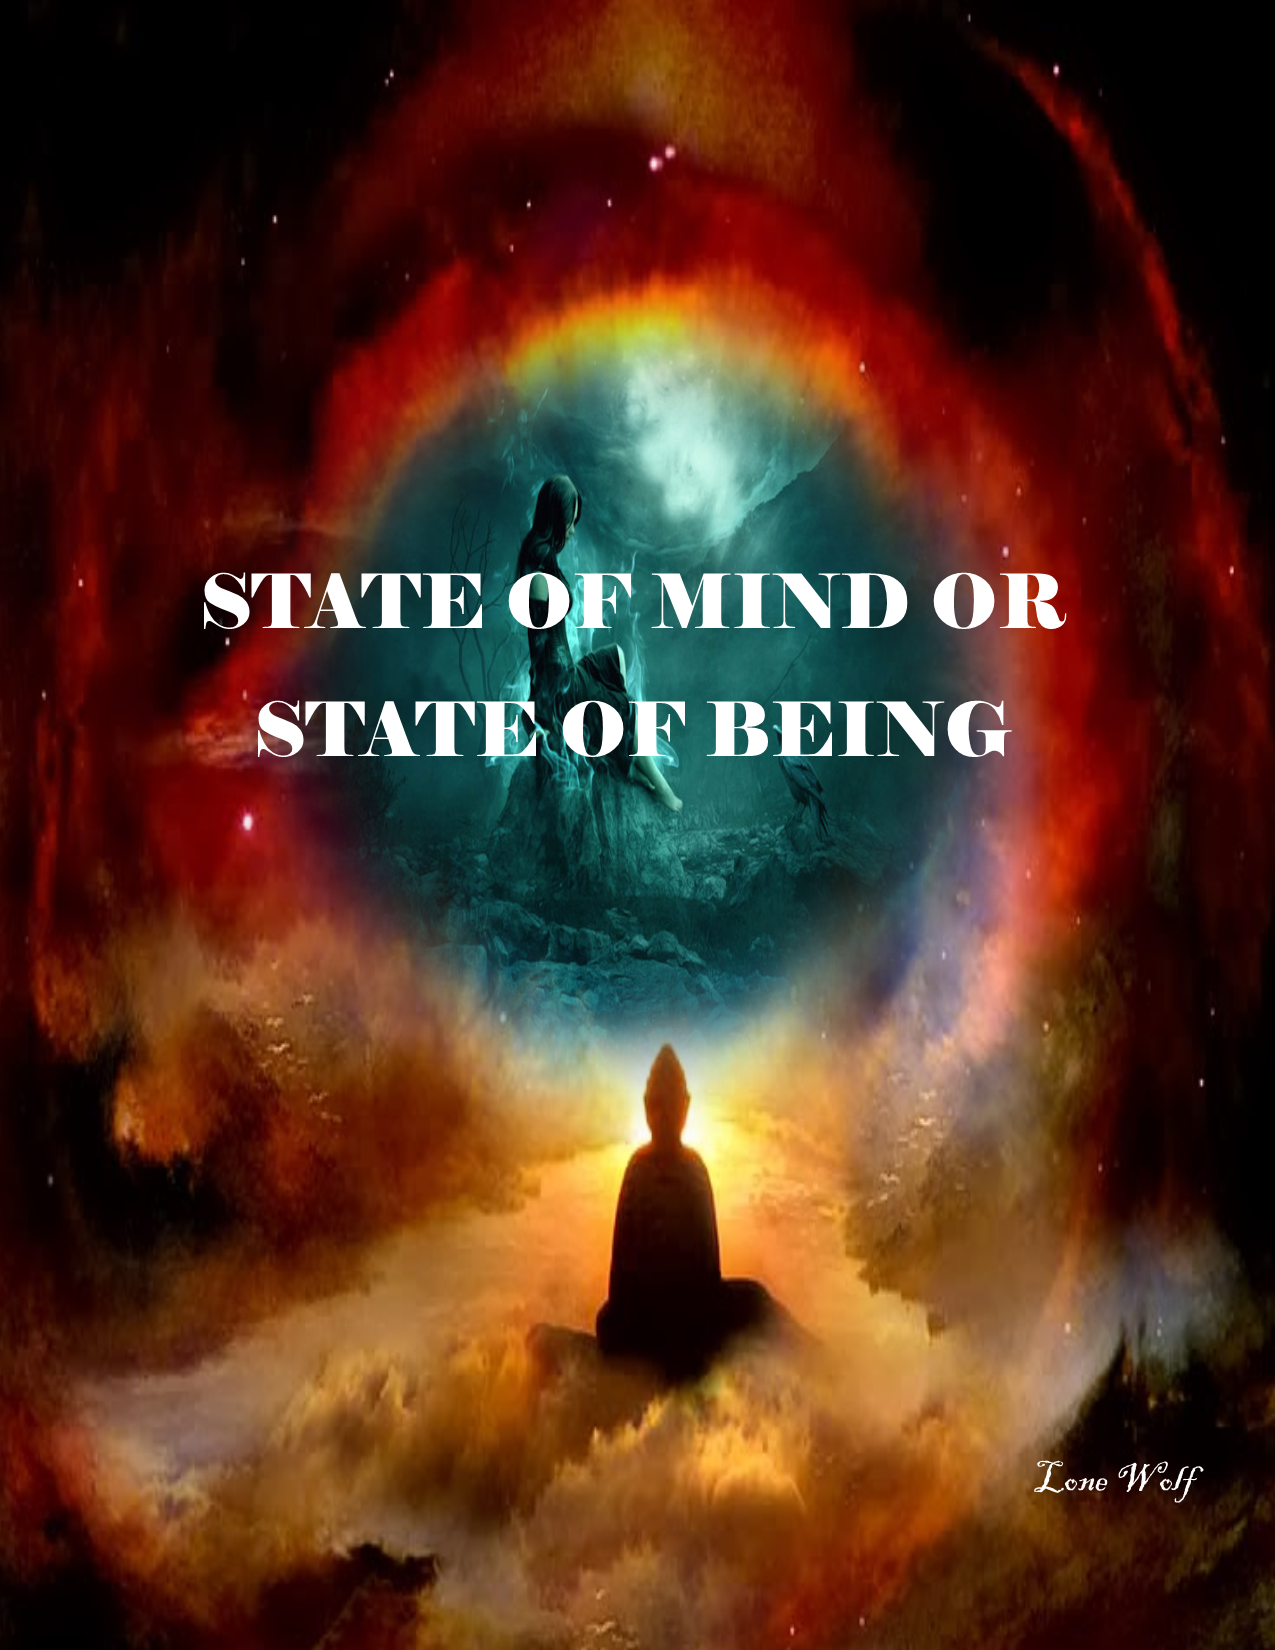 State of Mind or State of Being